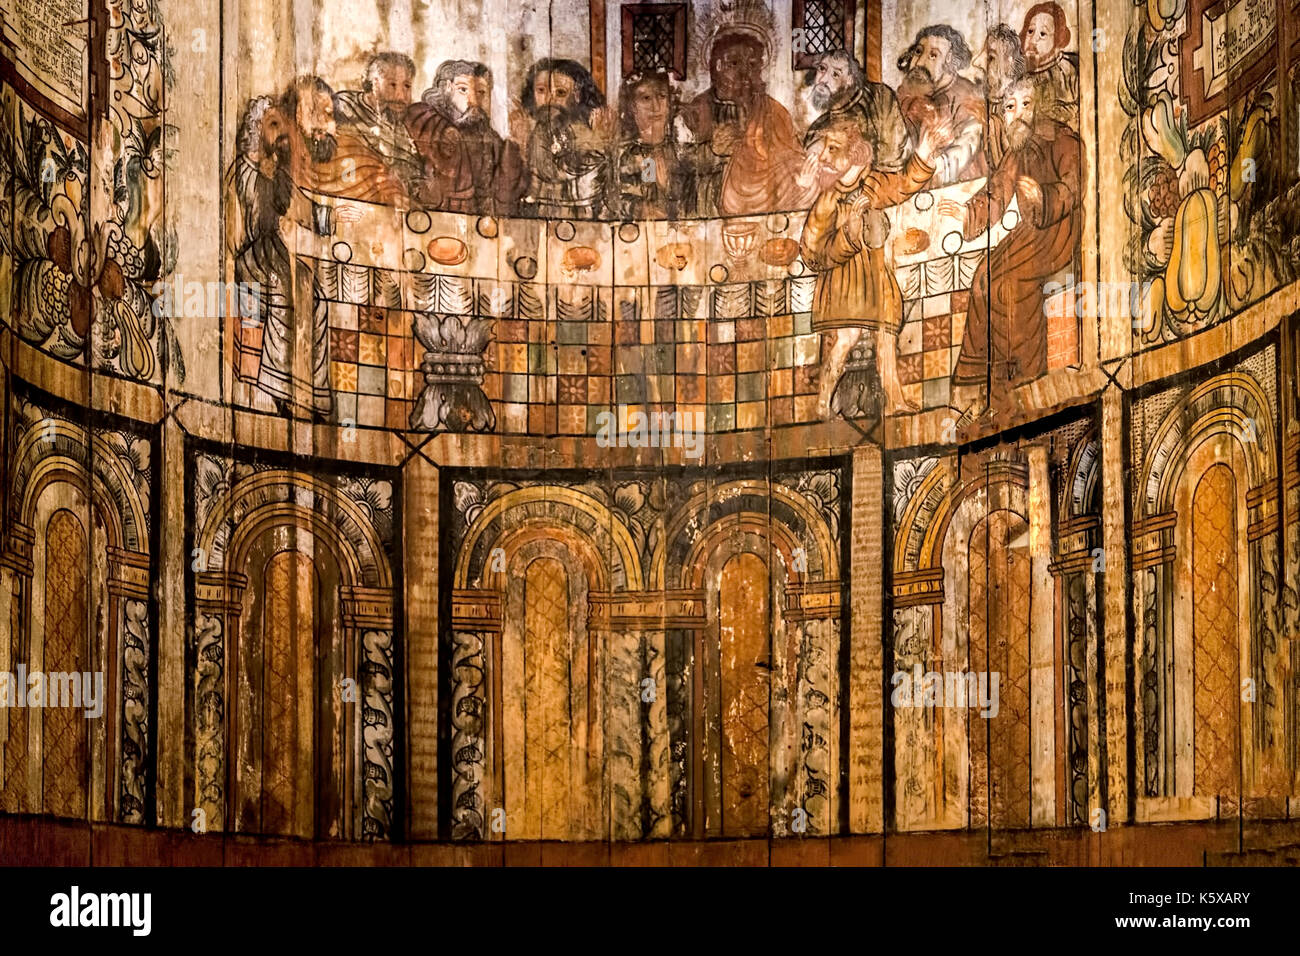 Painting of the Last Supper in the ancient Stave Church in the Norsk Folkemuseum, a Museum of cultural History, Oslo, Bygdøy, Norway. - Stock Image